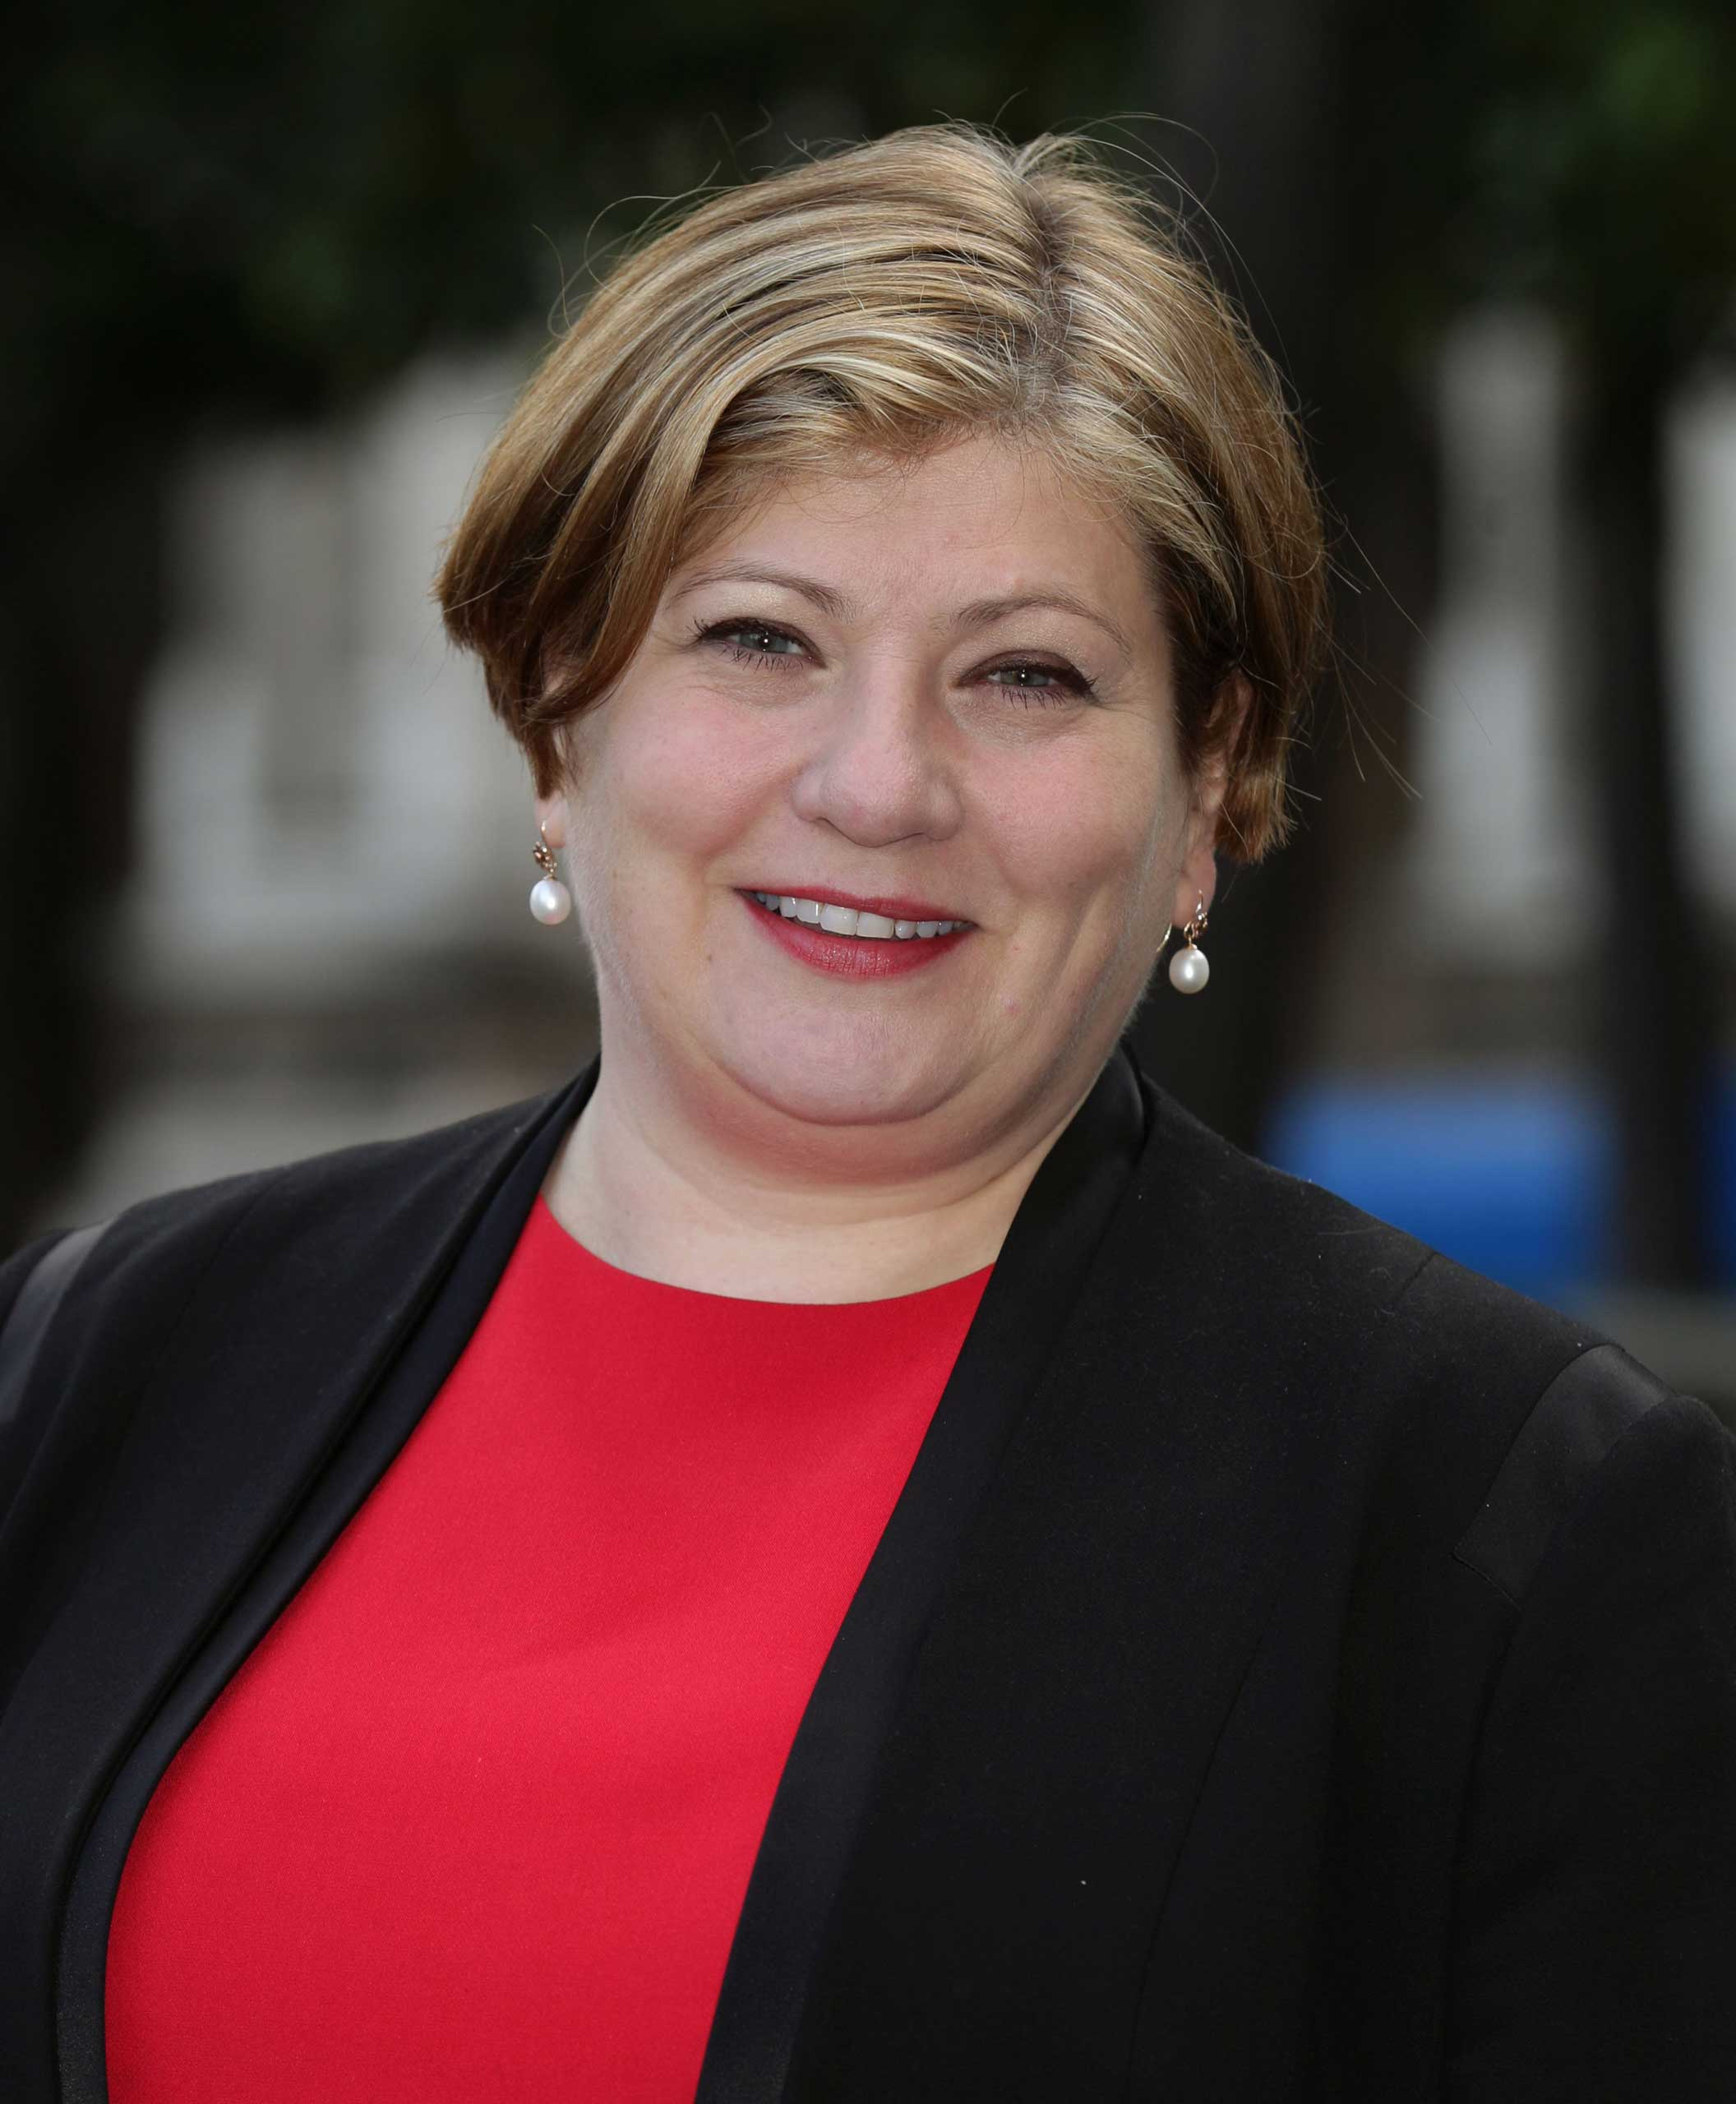 Then-Shadow Attorney General Emily Thornberry in 2013.